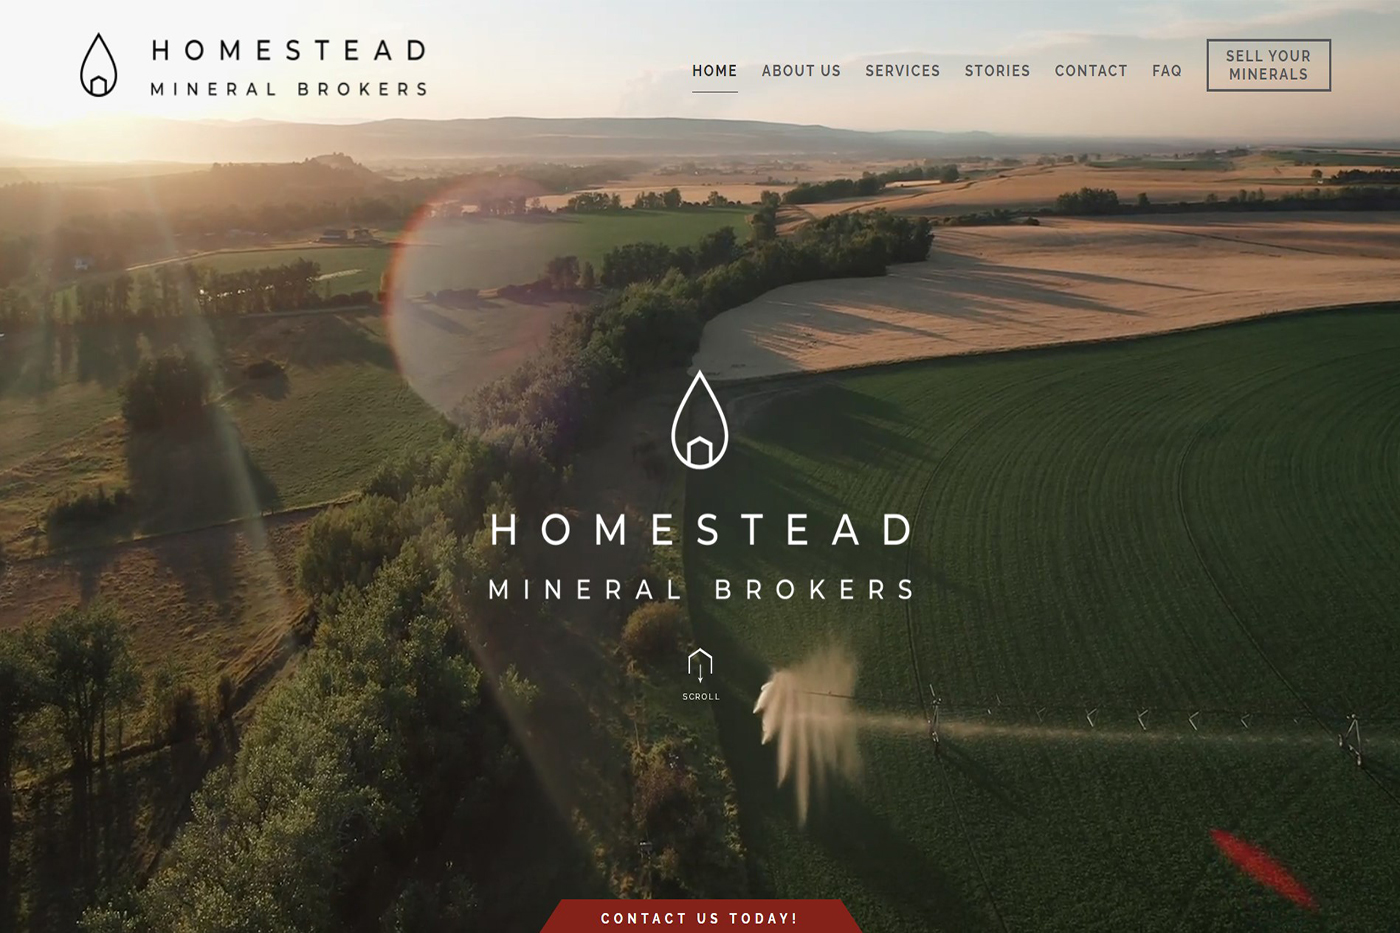 HOME STEAD MINERALS